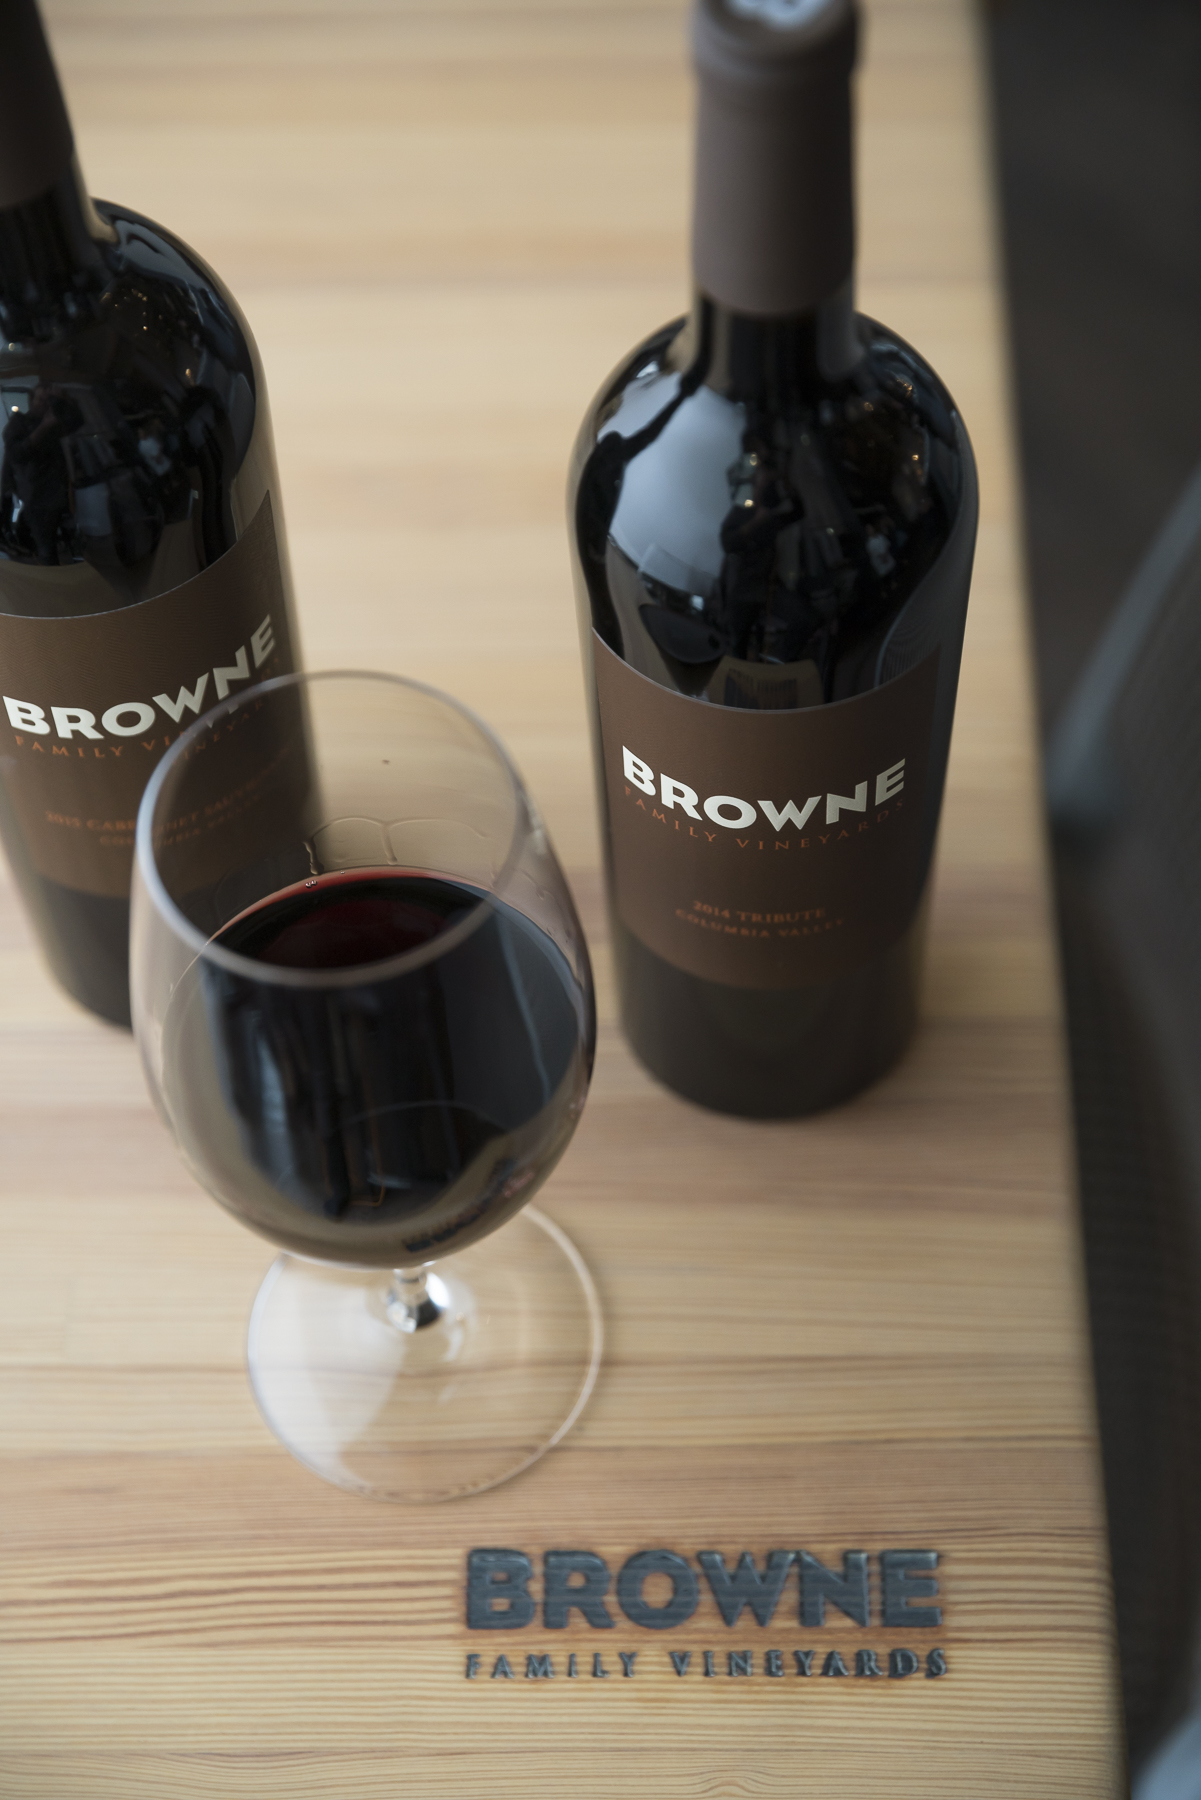 Browne wine bottle, wine glass and Browne Family cutting board